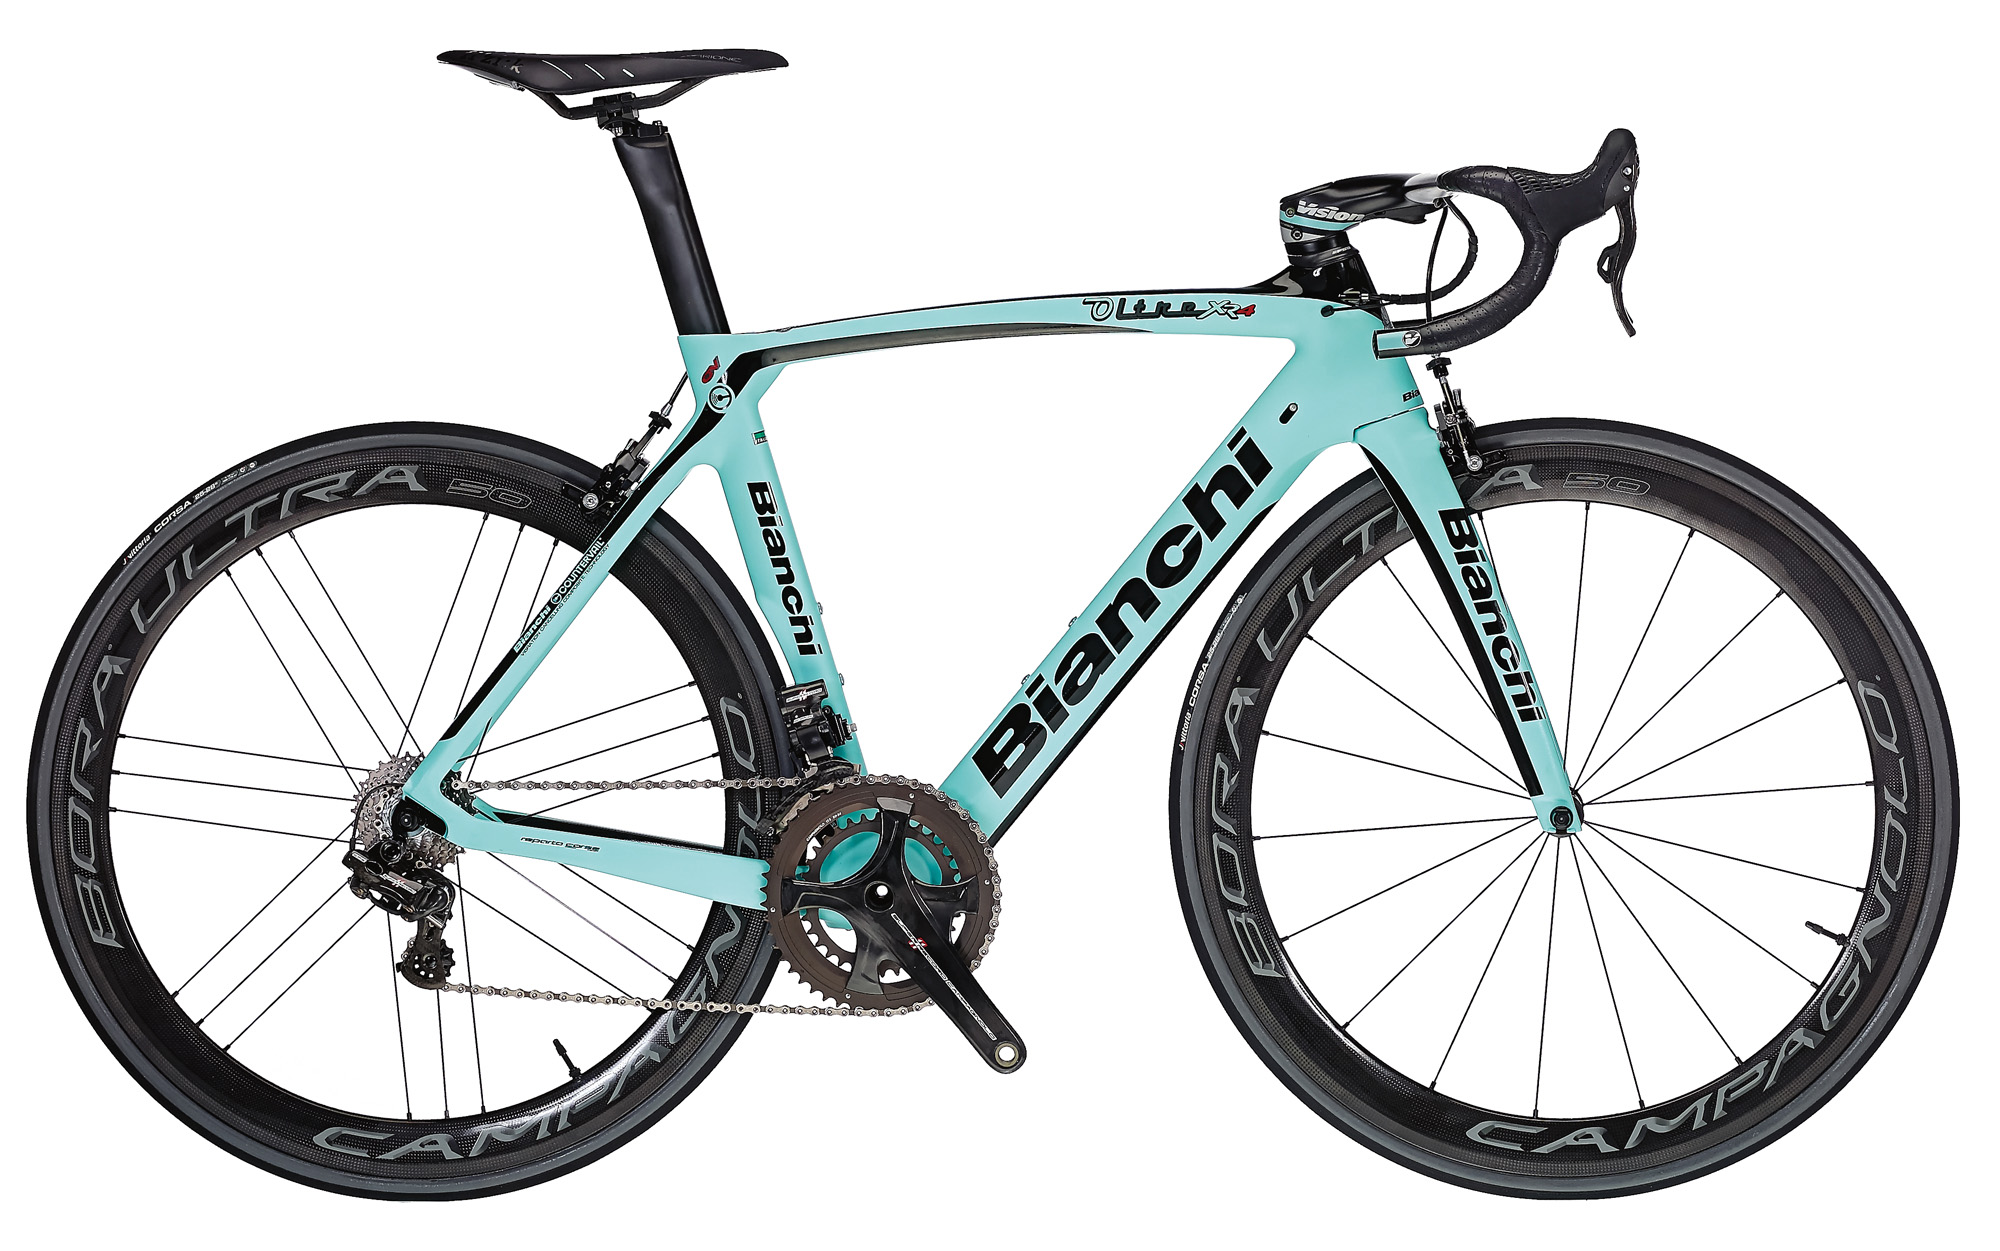 2019-Oltre-XR4-superrecord-CK16